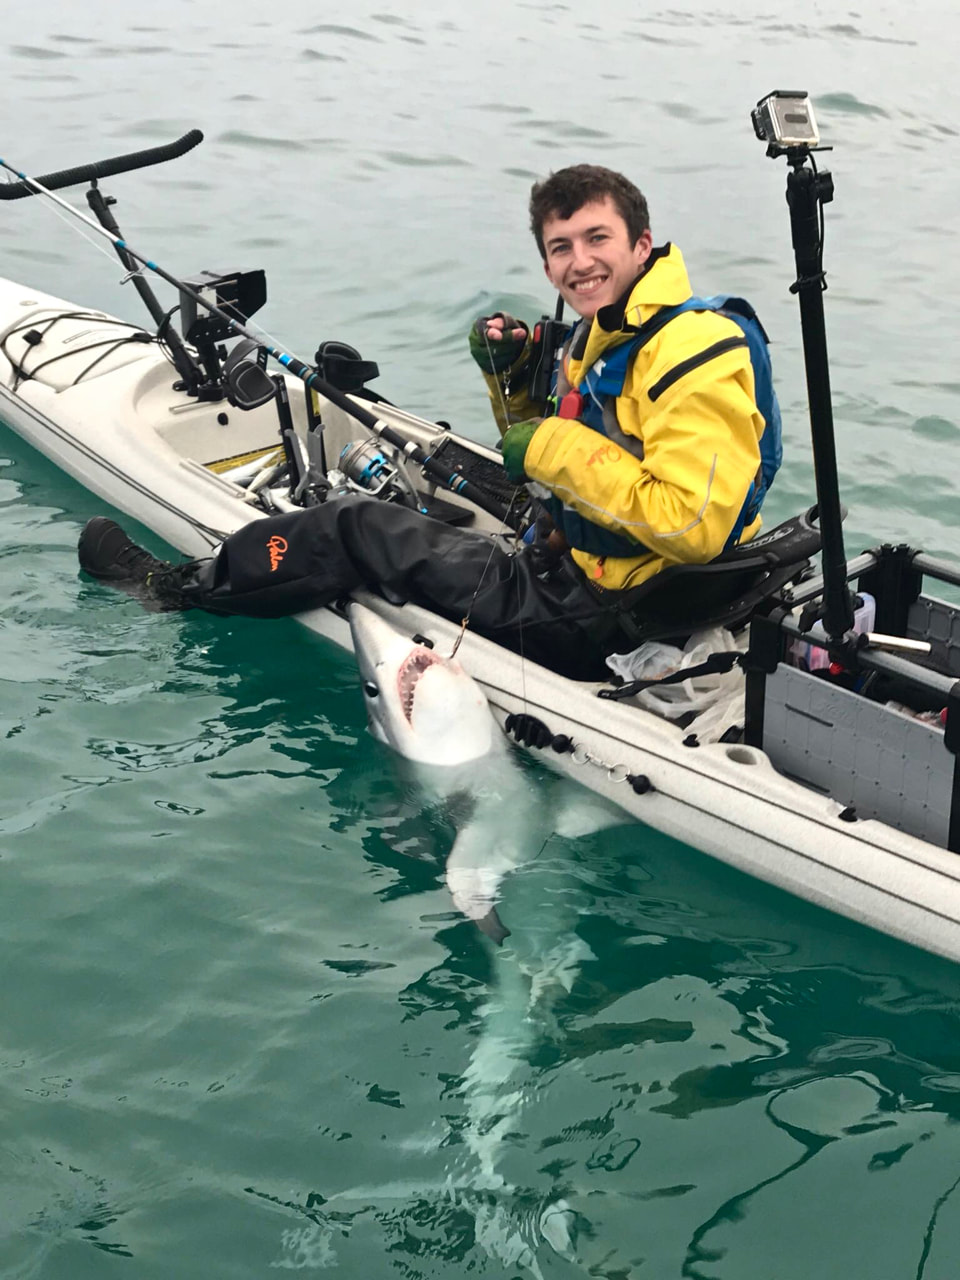 Cornish Kayak Angler catches a Porbeagle Shark from his Kayak